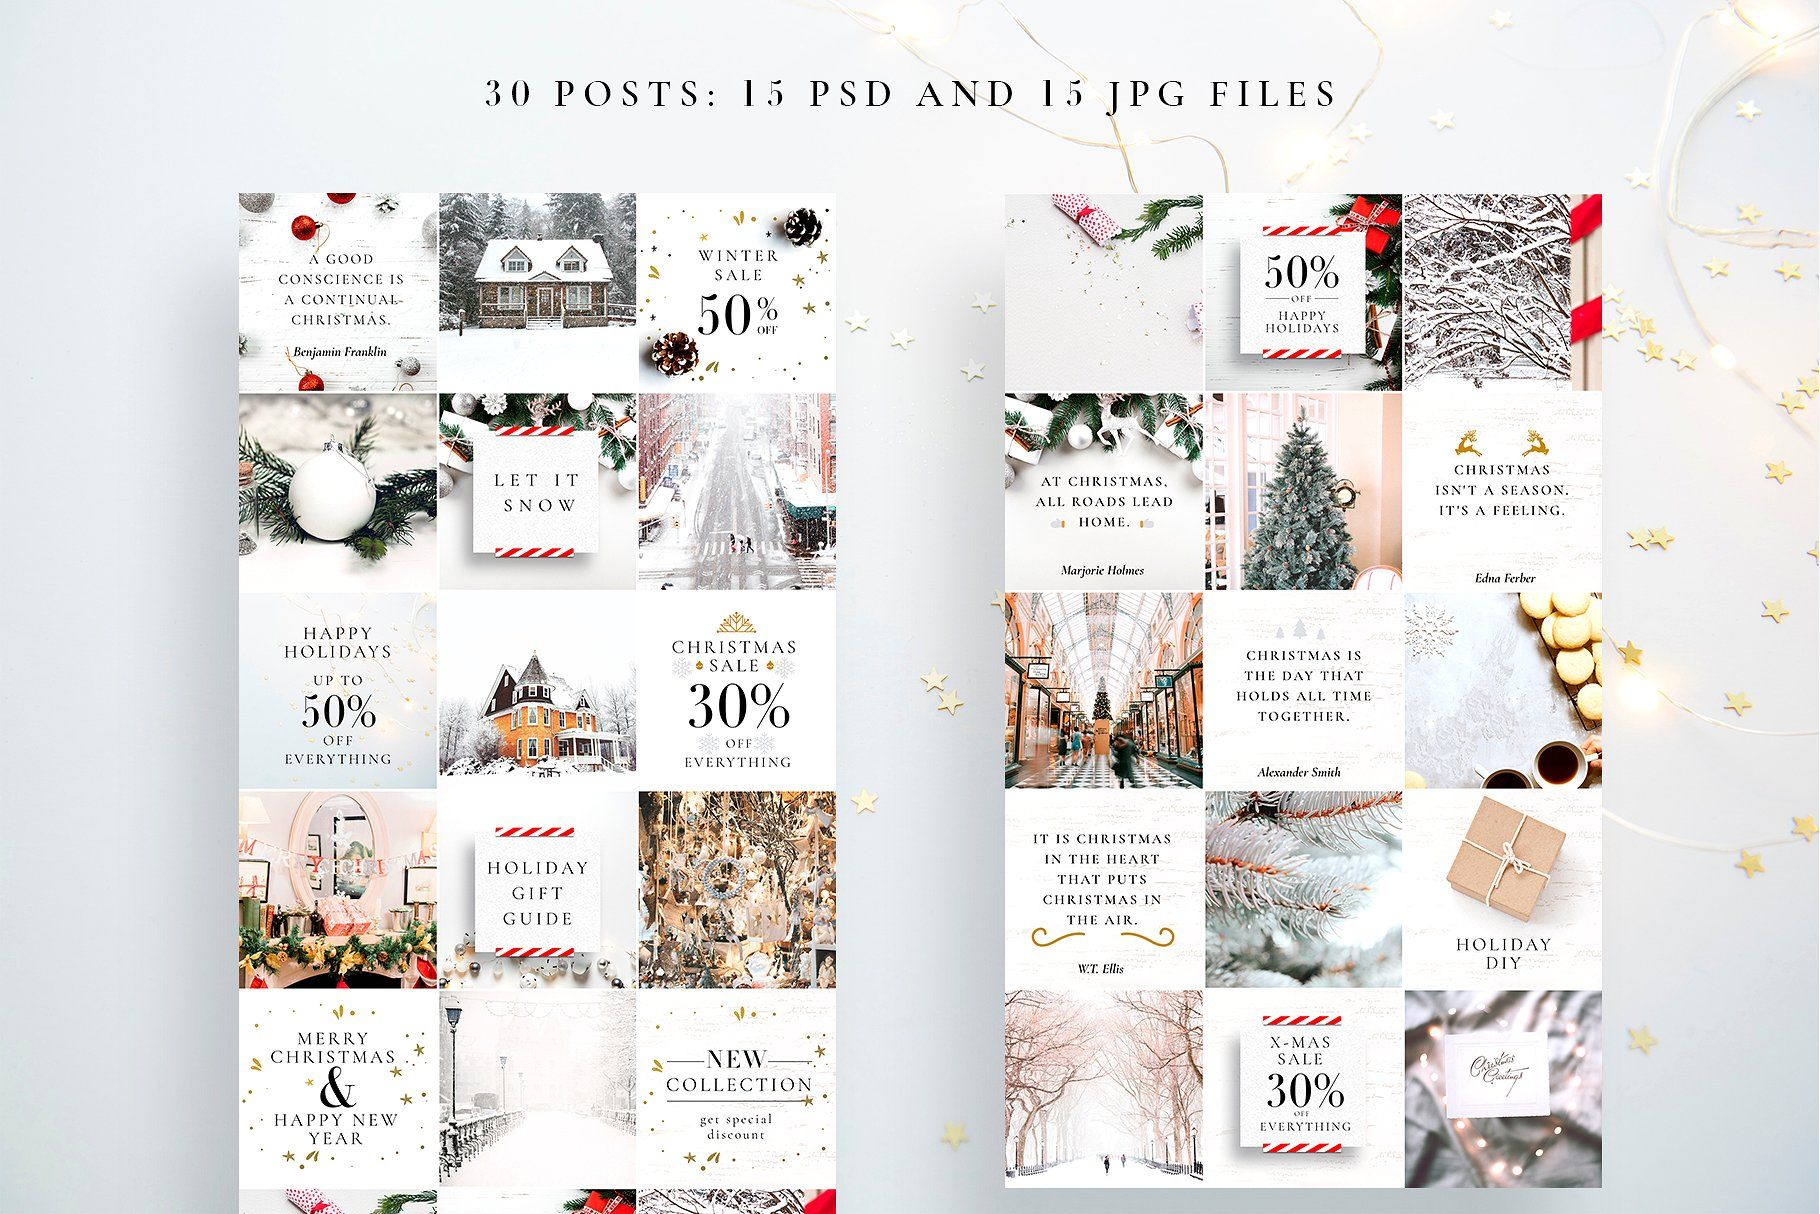 Christmas Instagram Posts Instagram Template Design Instagram